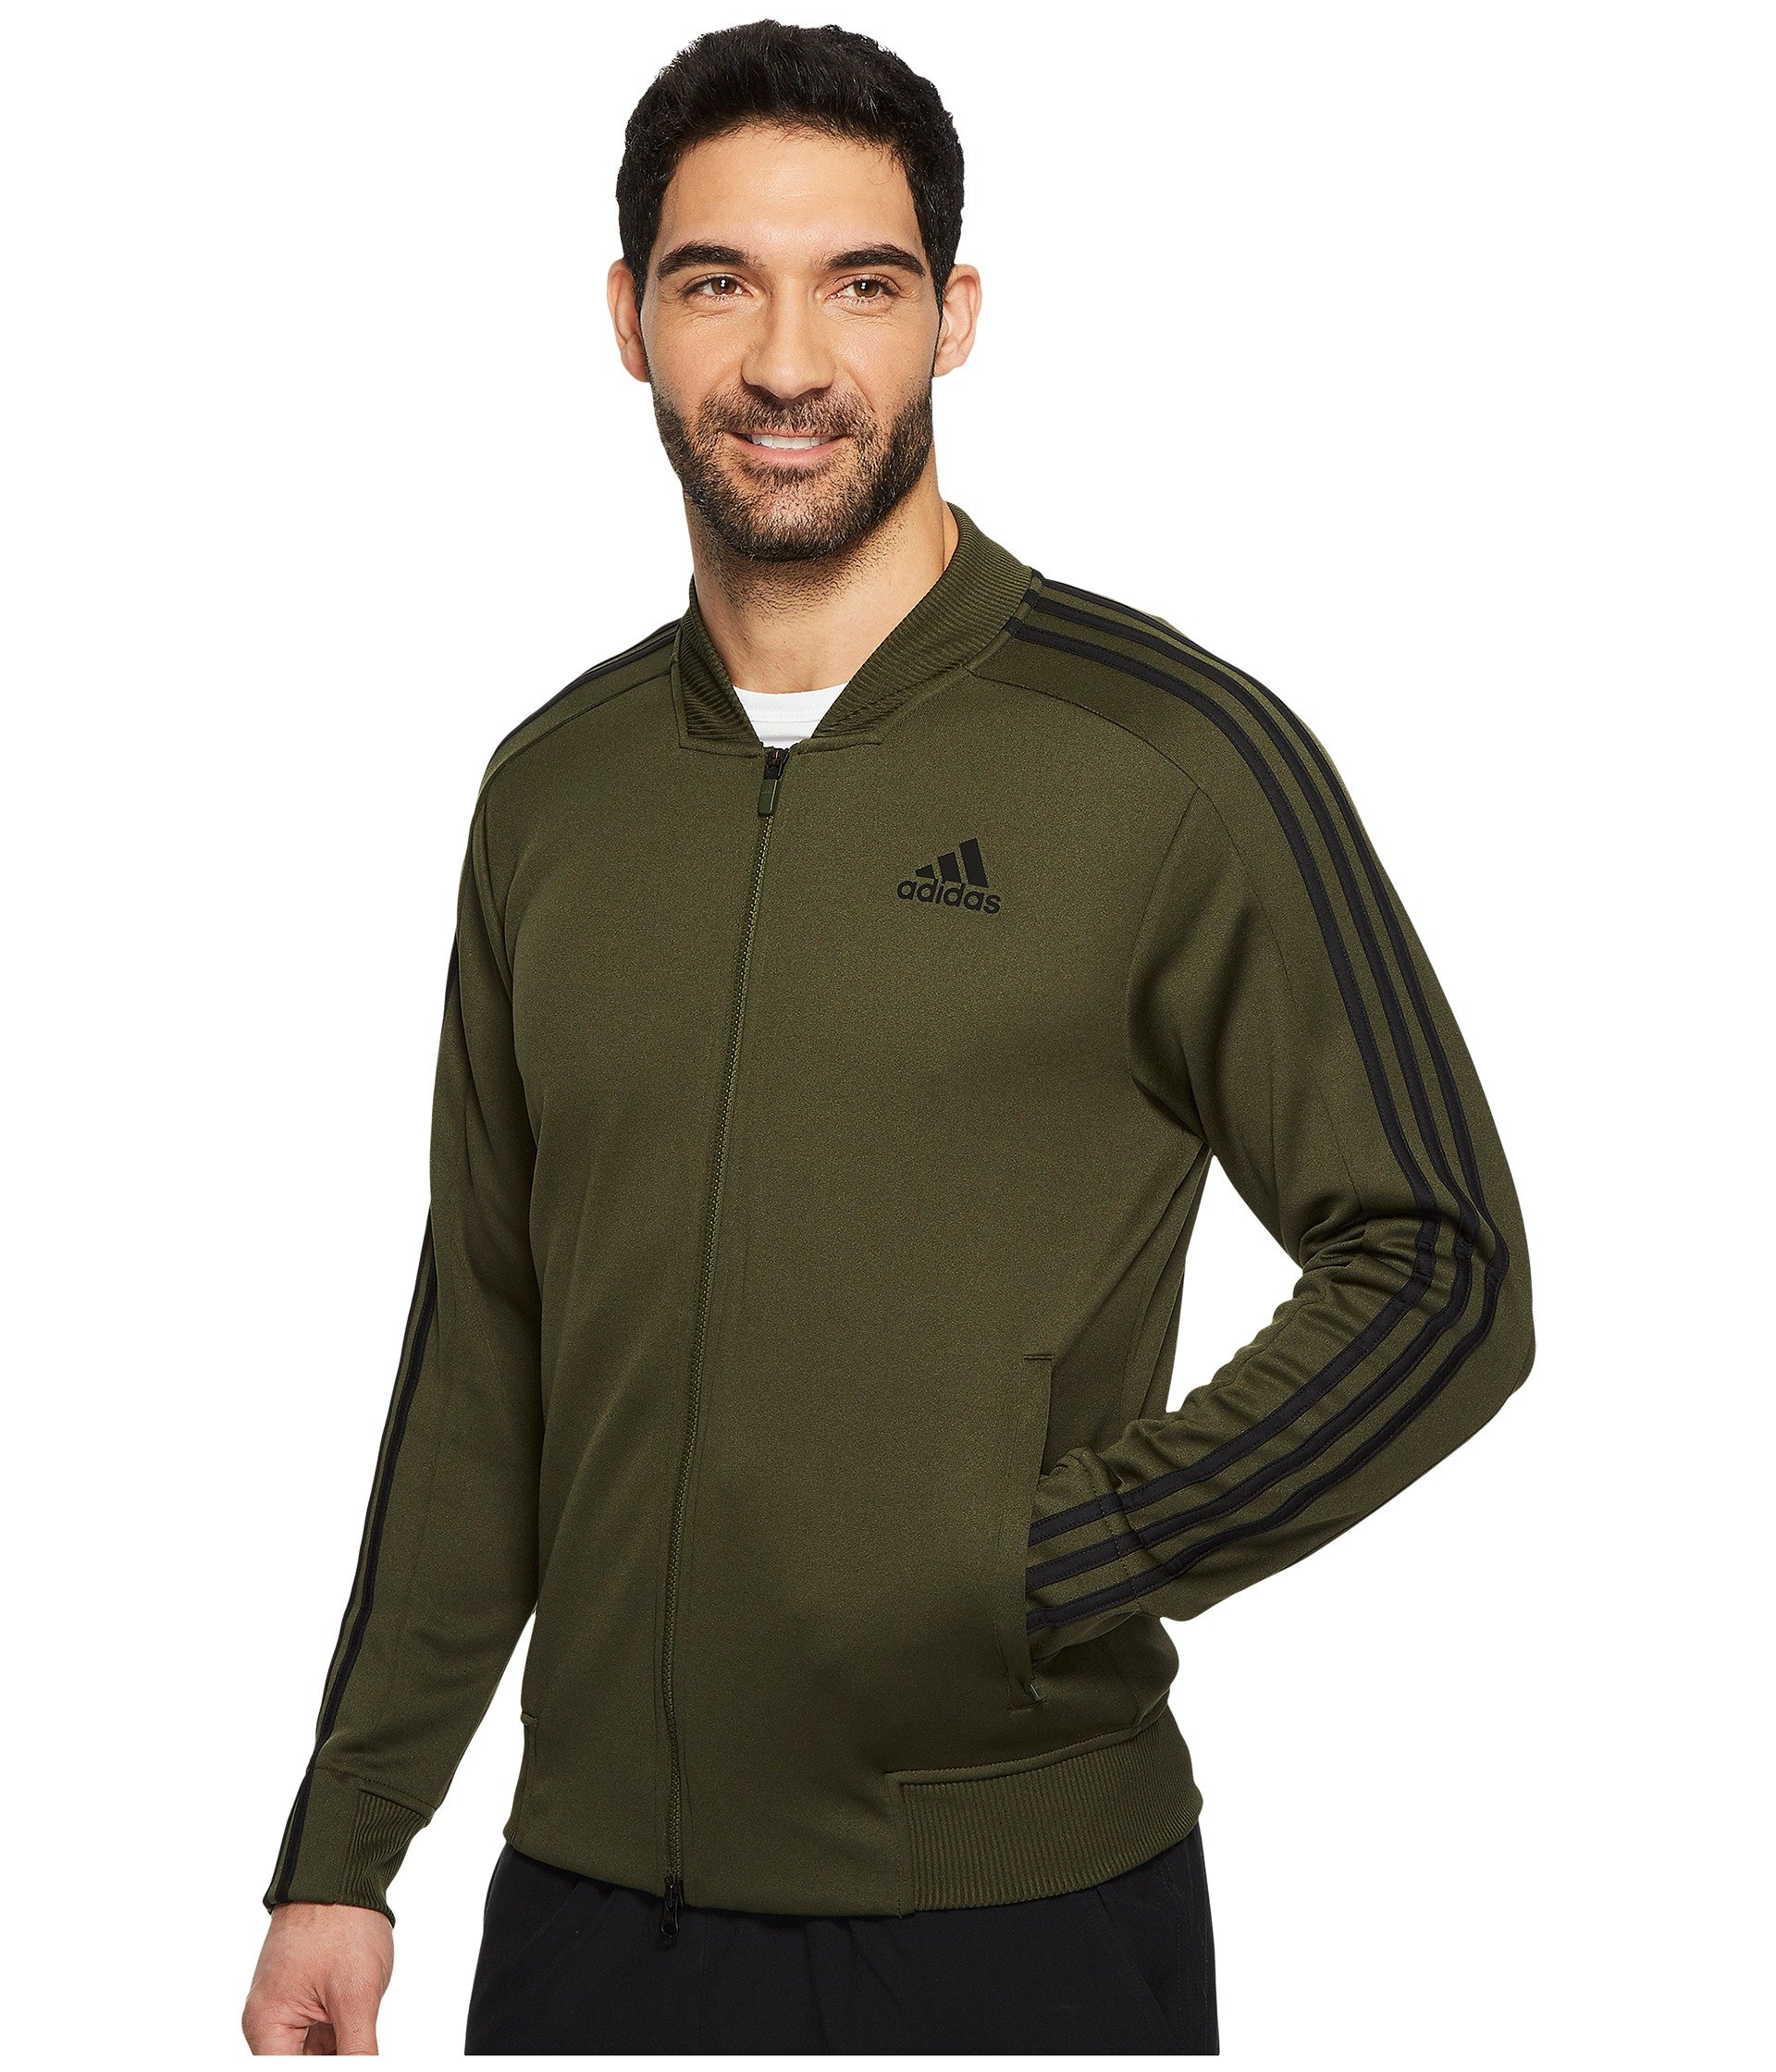 adidas Men's Sport ID Track Bomber Jacket Night Cargo Small by adidas (Image #3)